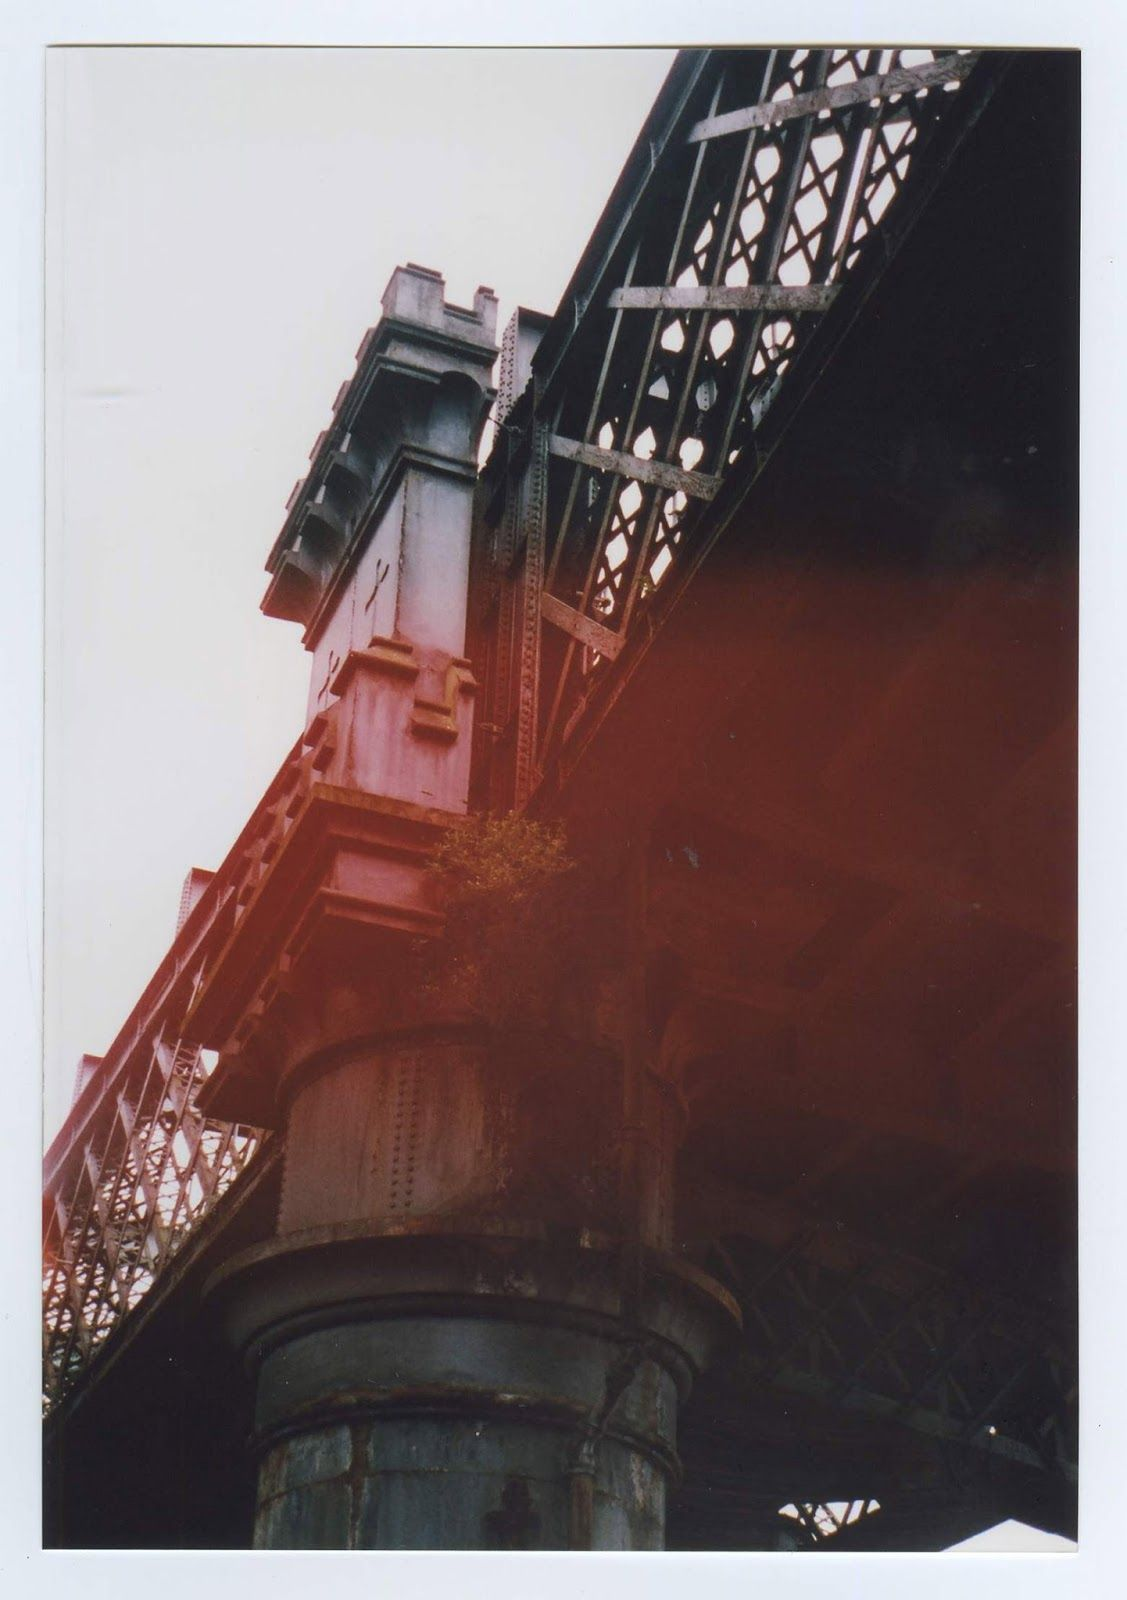 Photography lomography light leaks film analog analogue 35mm 120mm pentax k1000 expired film manchester explore urbex history diana black and